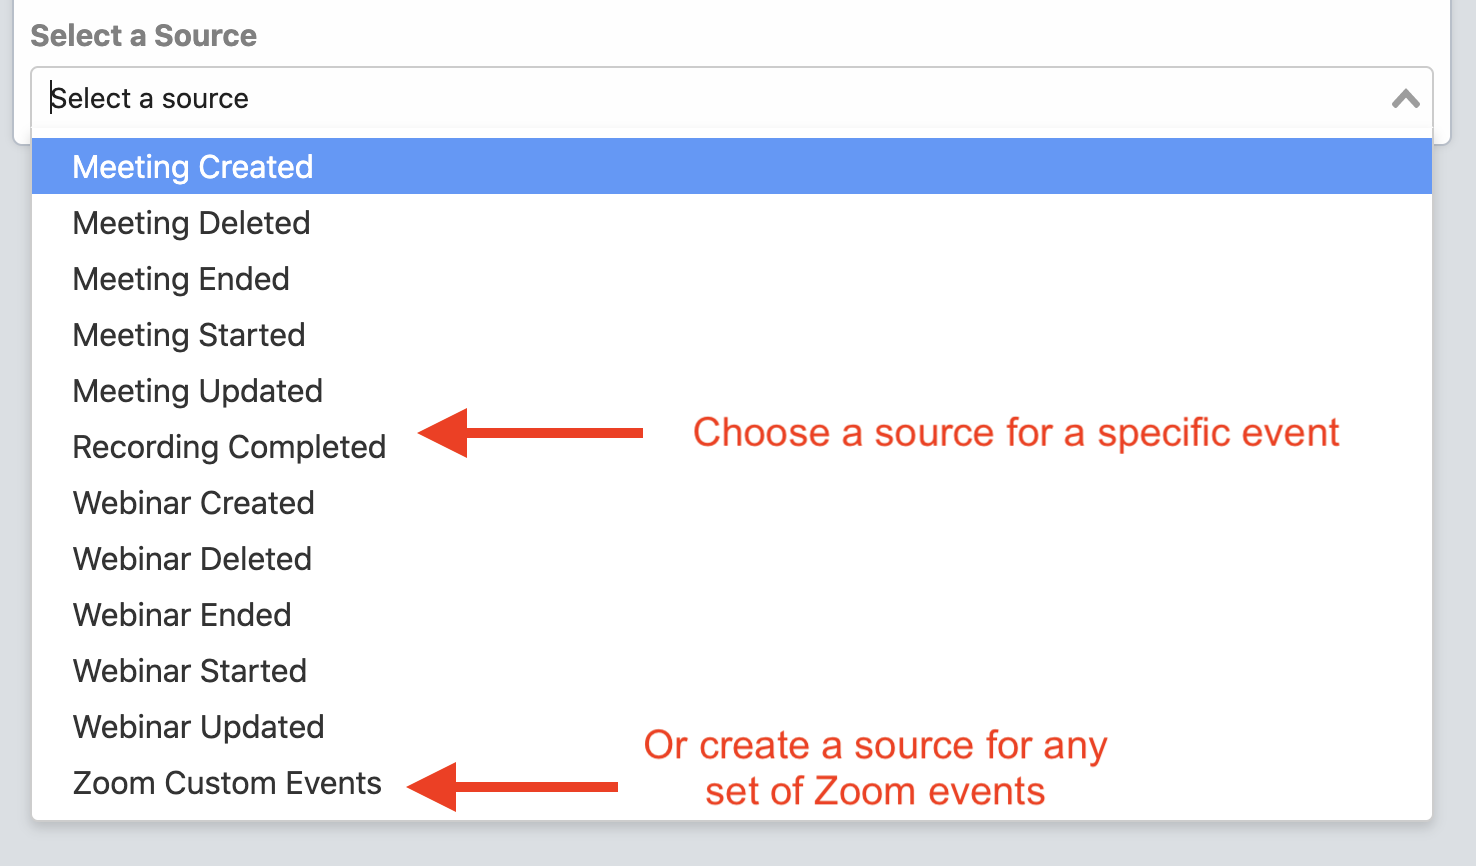 List of Zoom event sources